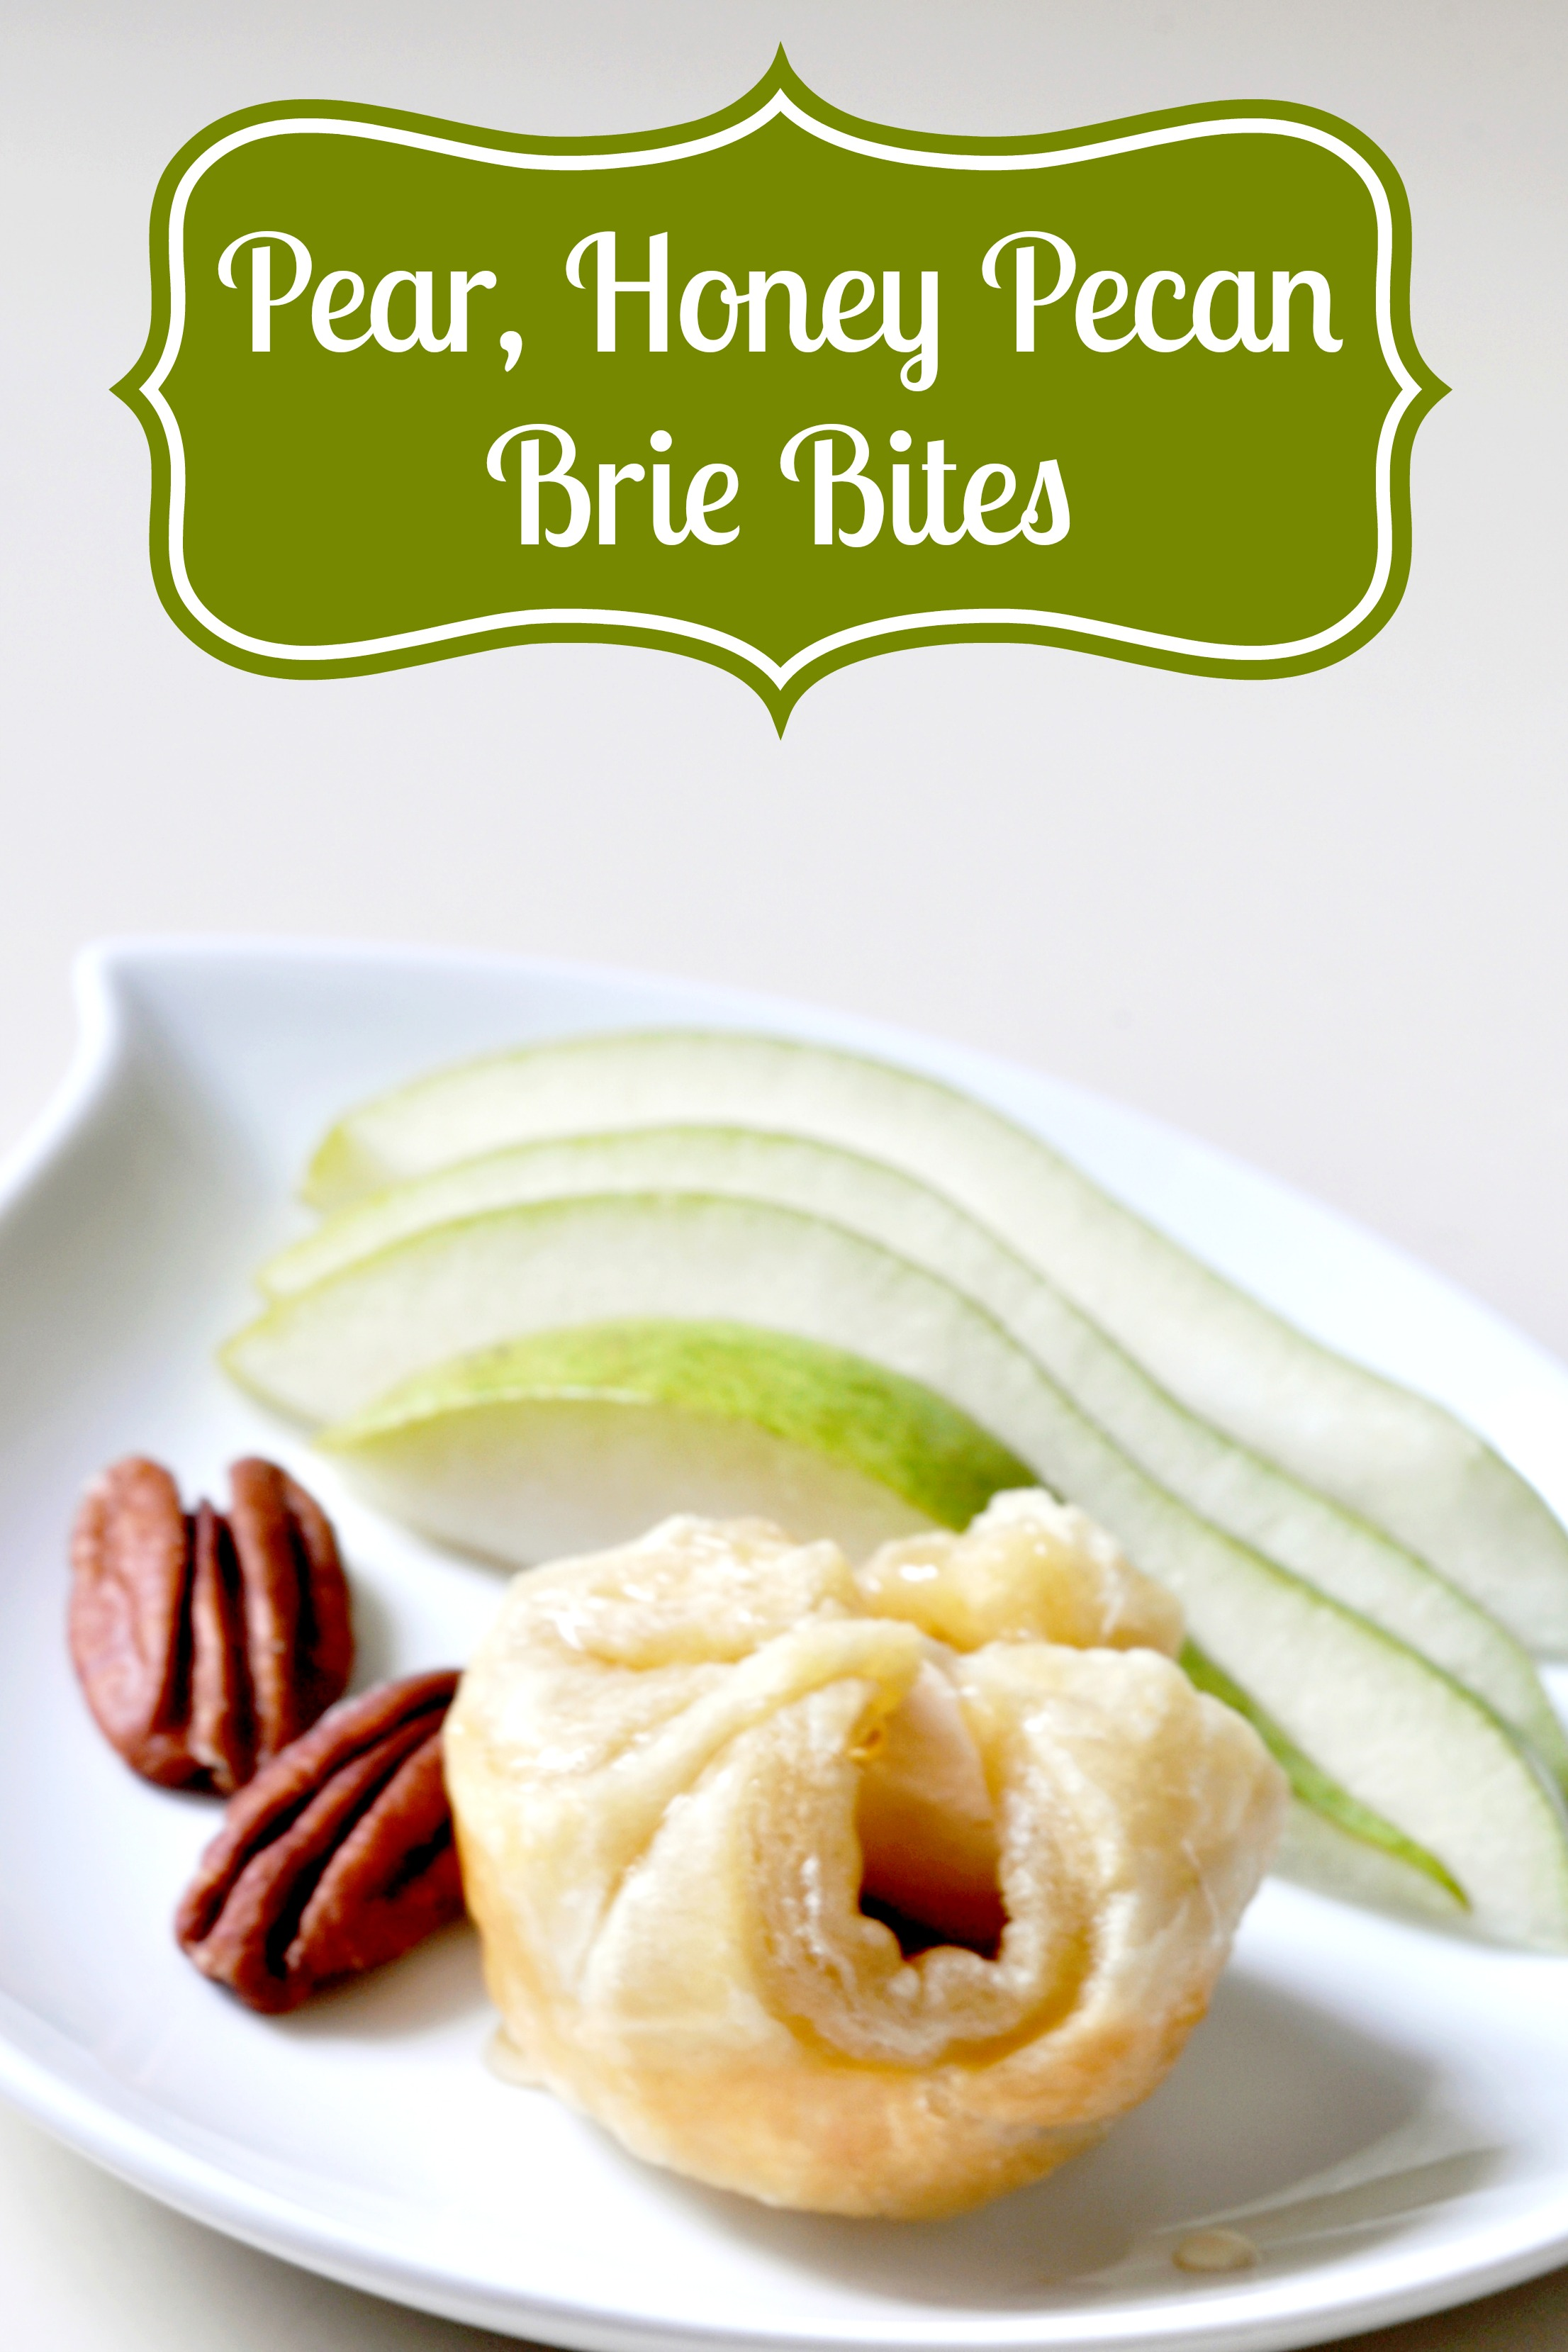 Wine and Cheese Date Night with Homemade Brie Bites - Raspberry Brie Bites and Pear, Honey Pecan Brie Bites {The Love Nerds} #datenight #appetizer #puffpastry